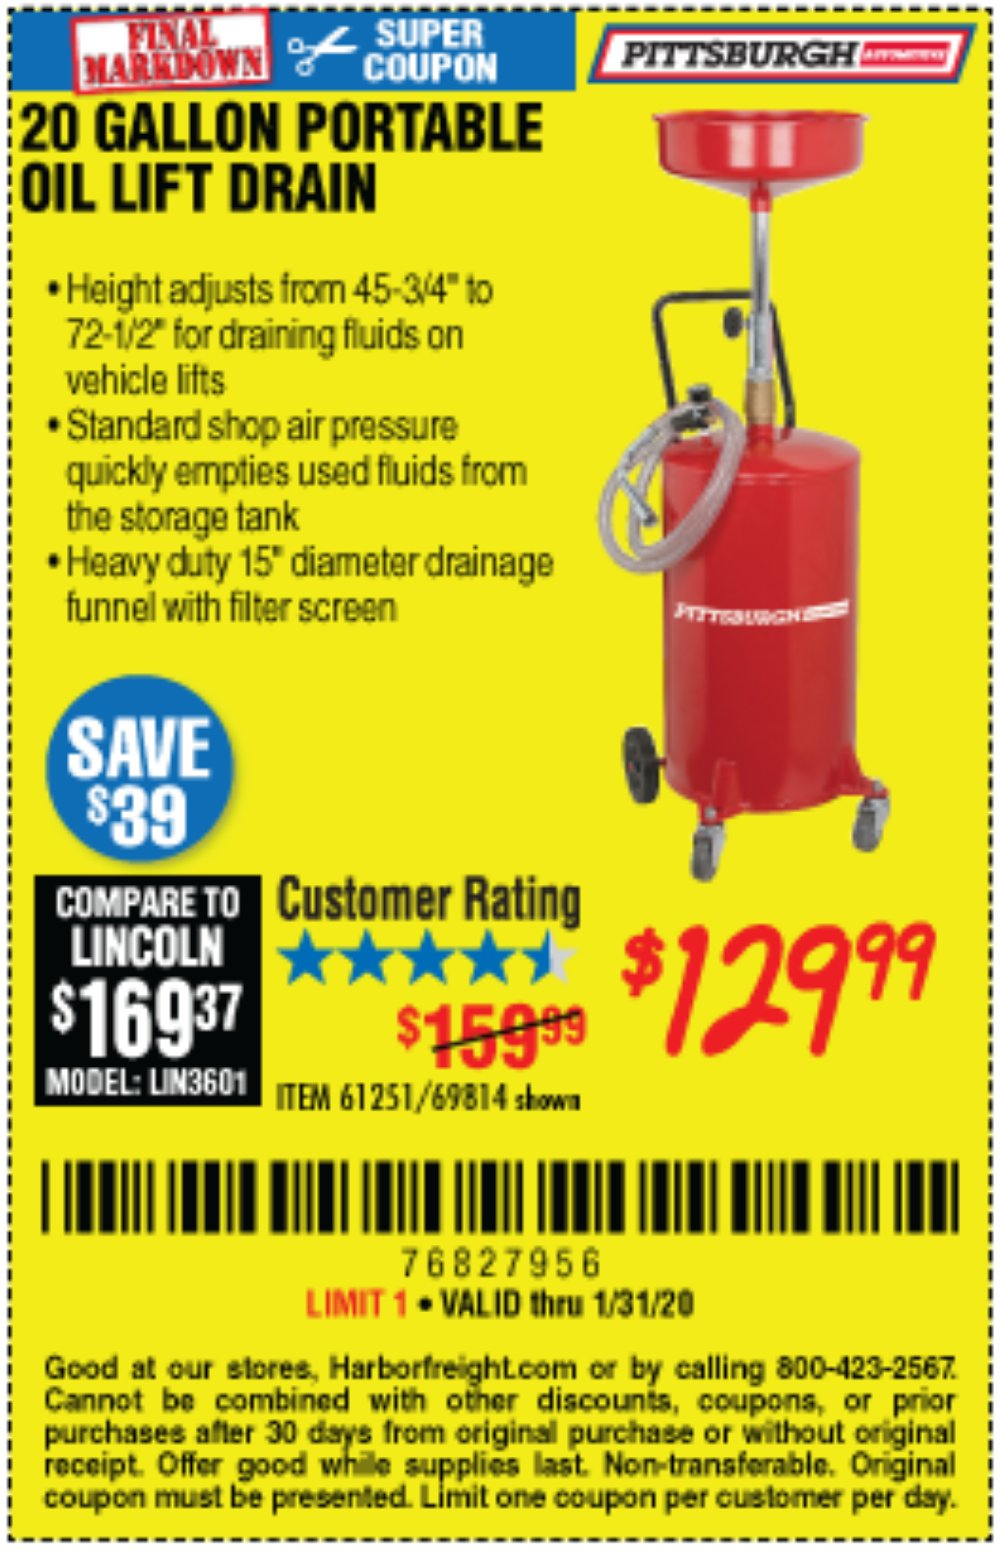 Harbor Freight Coupon, HF Coupons - 20 Gallon Portable Oil Lift Drain